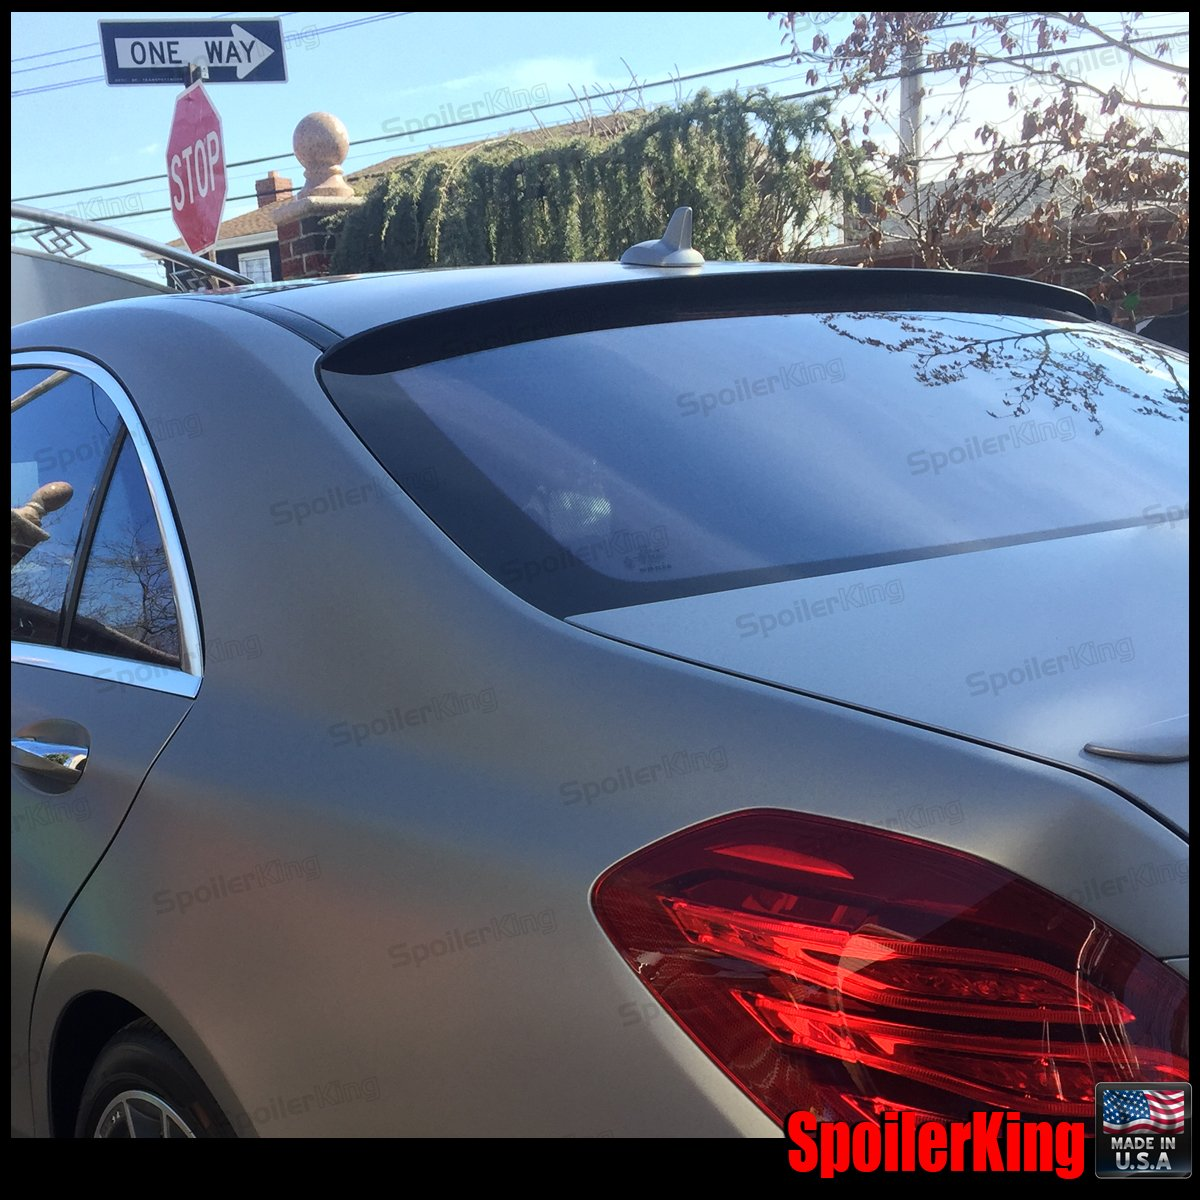 284R Compatible with Mercedes Benz S Class W222 2015-on Spoiler King Roof Spoiler